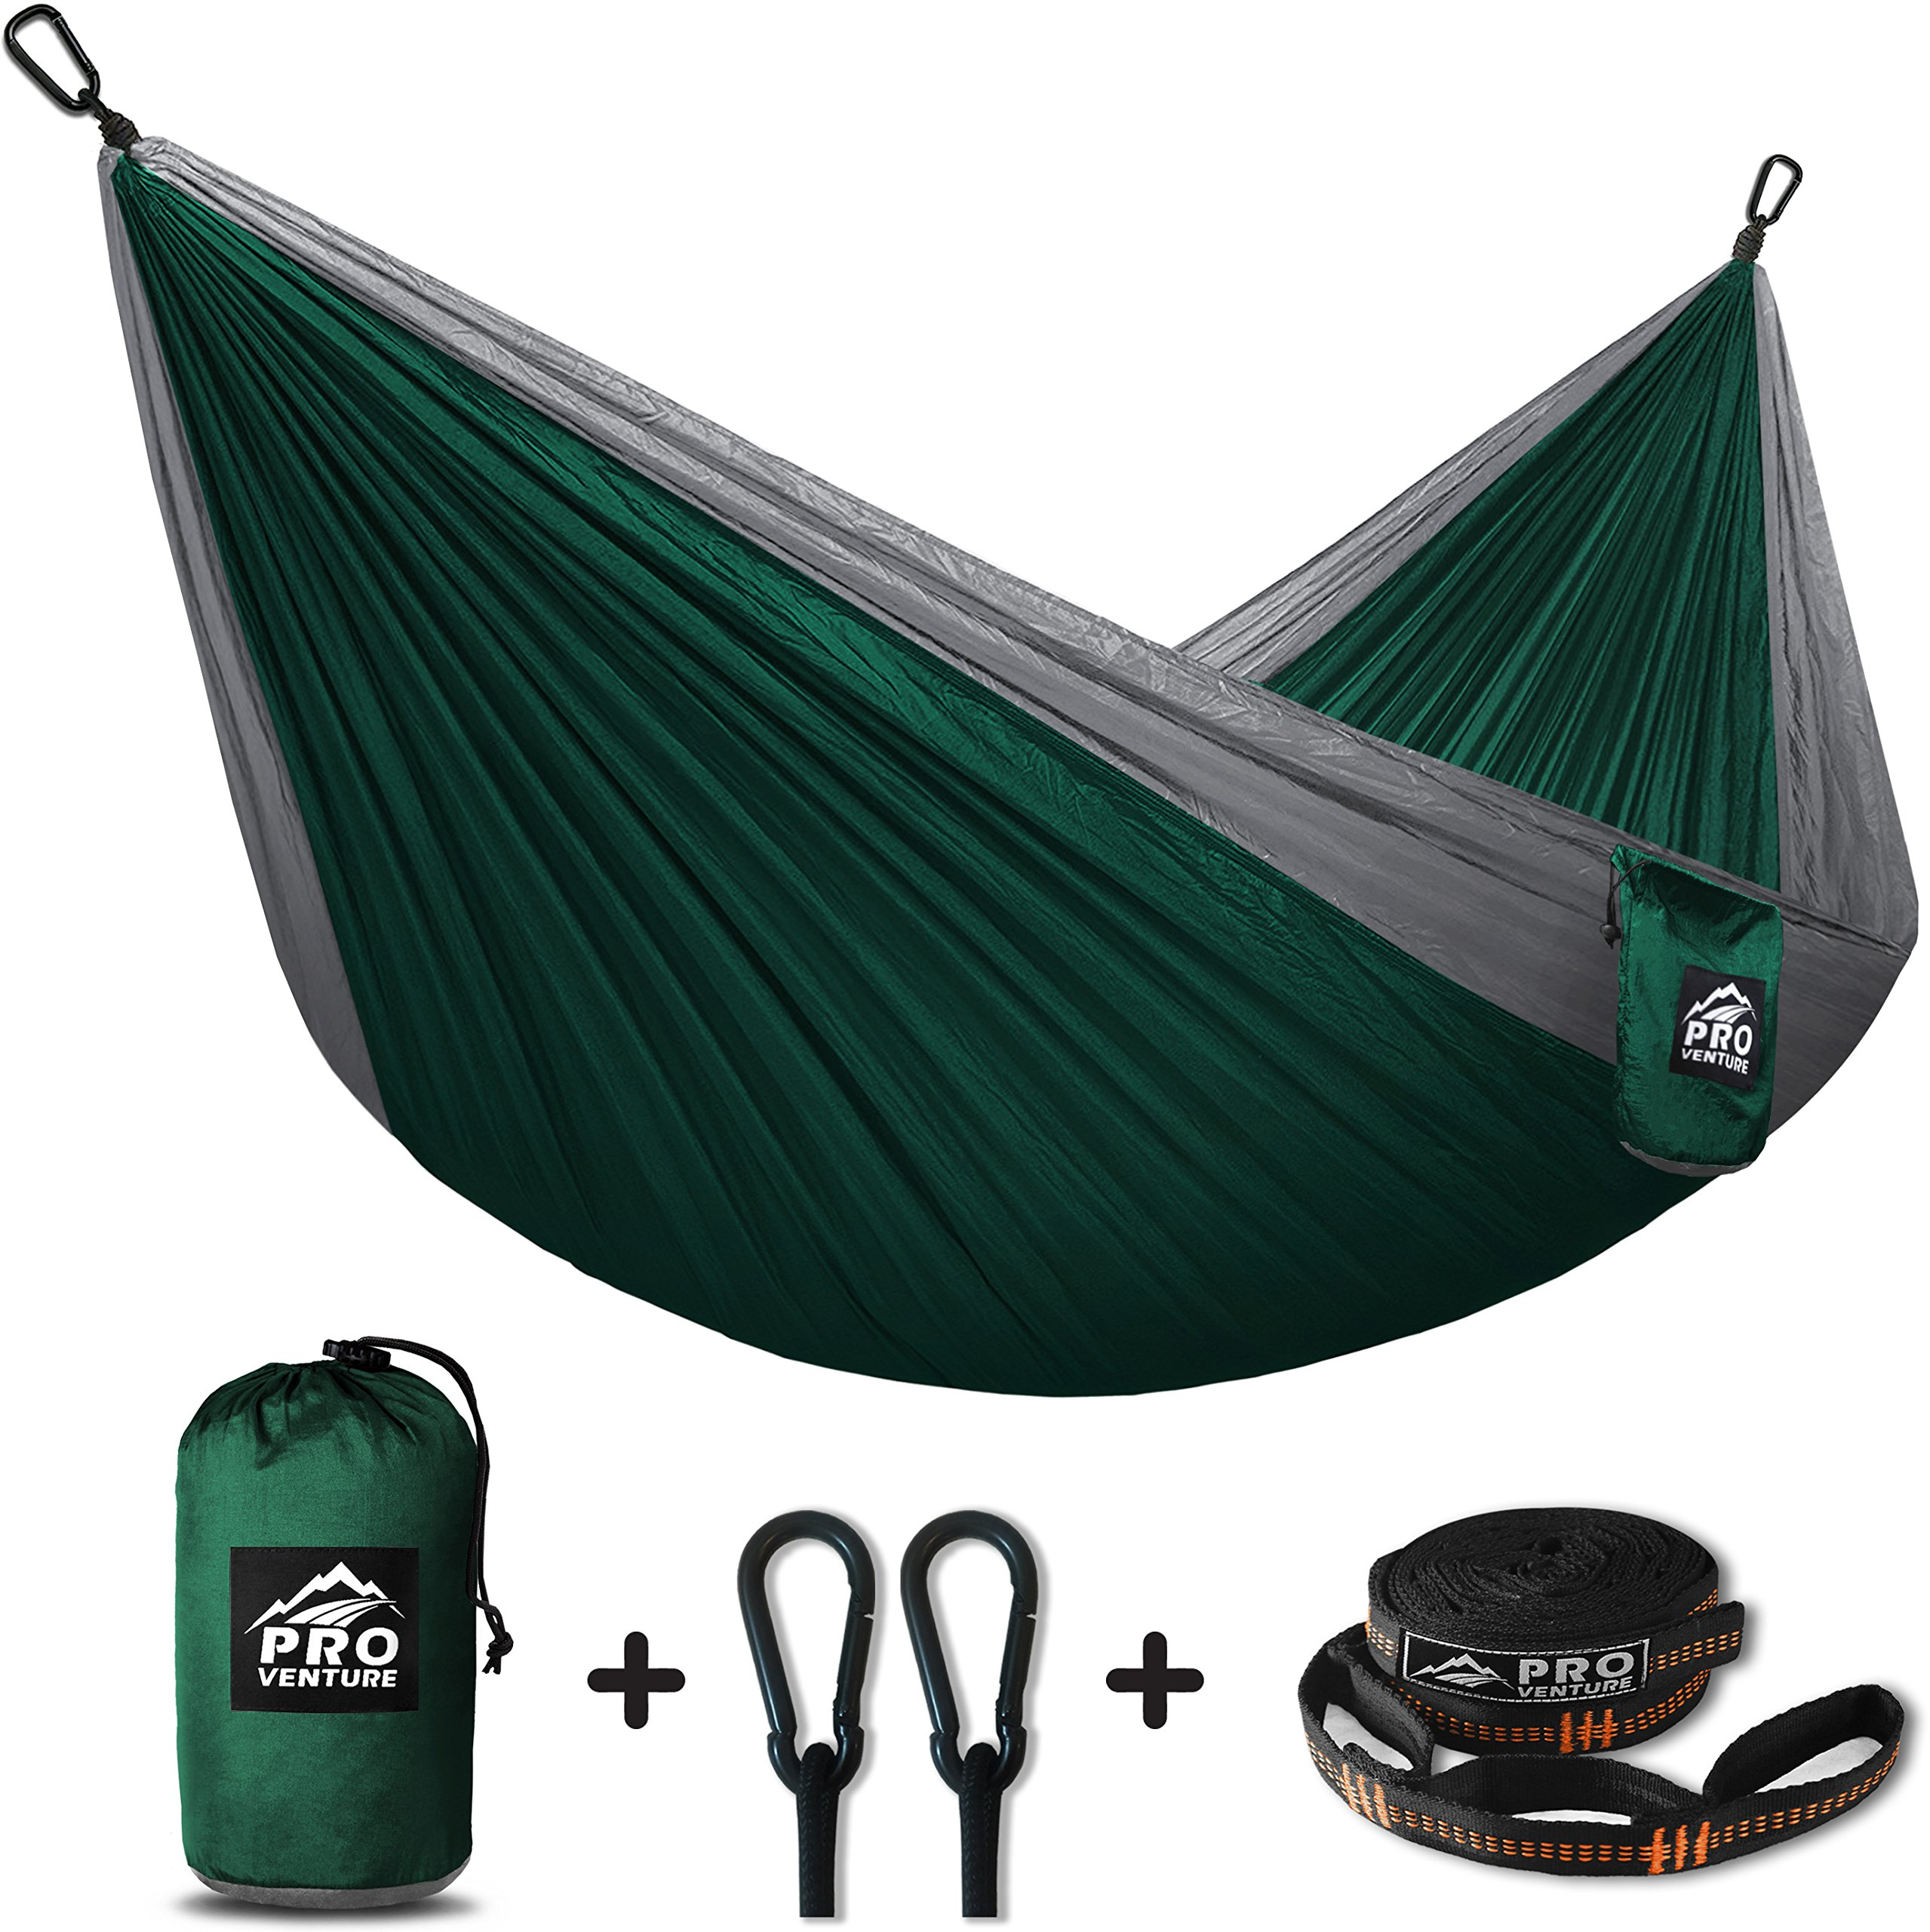 Proventure Camping Hammock & FREE Tree Straps